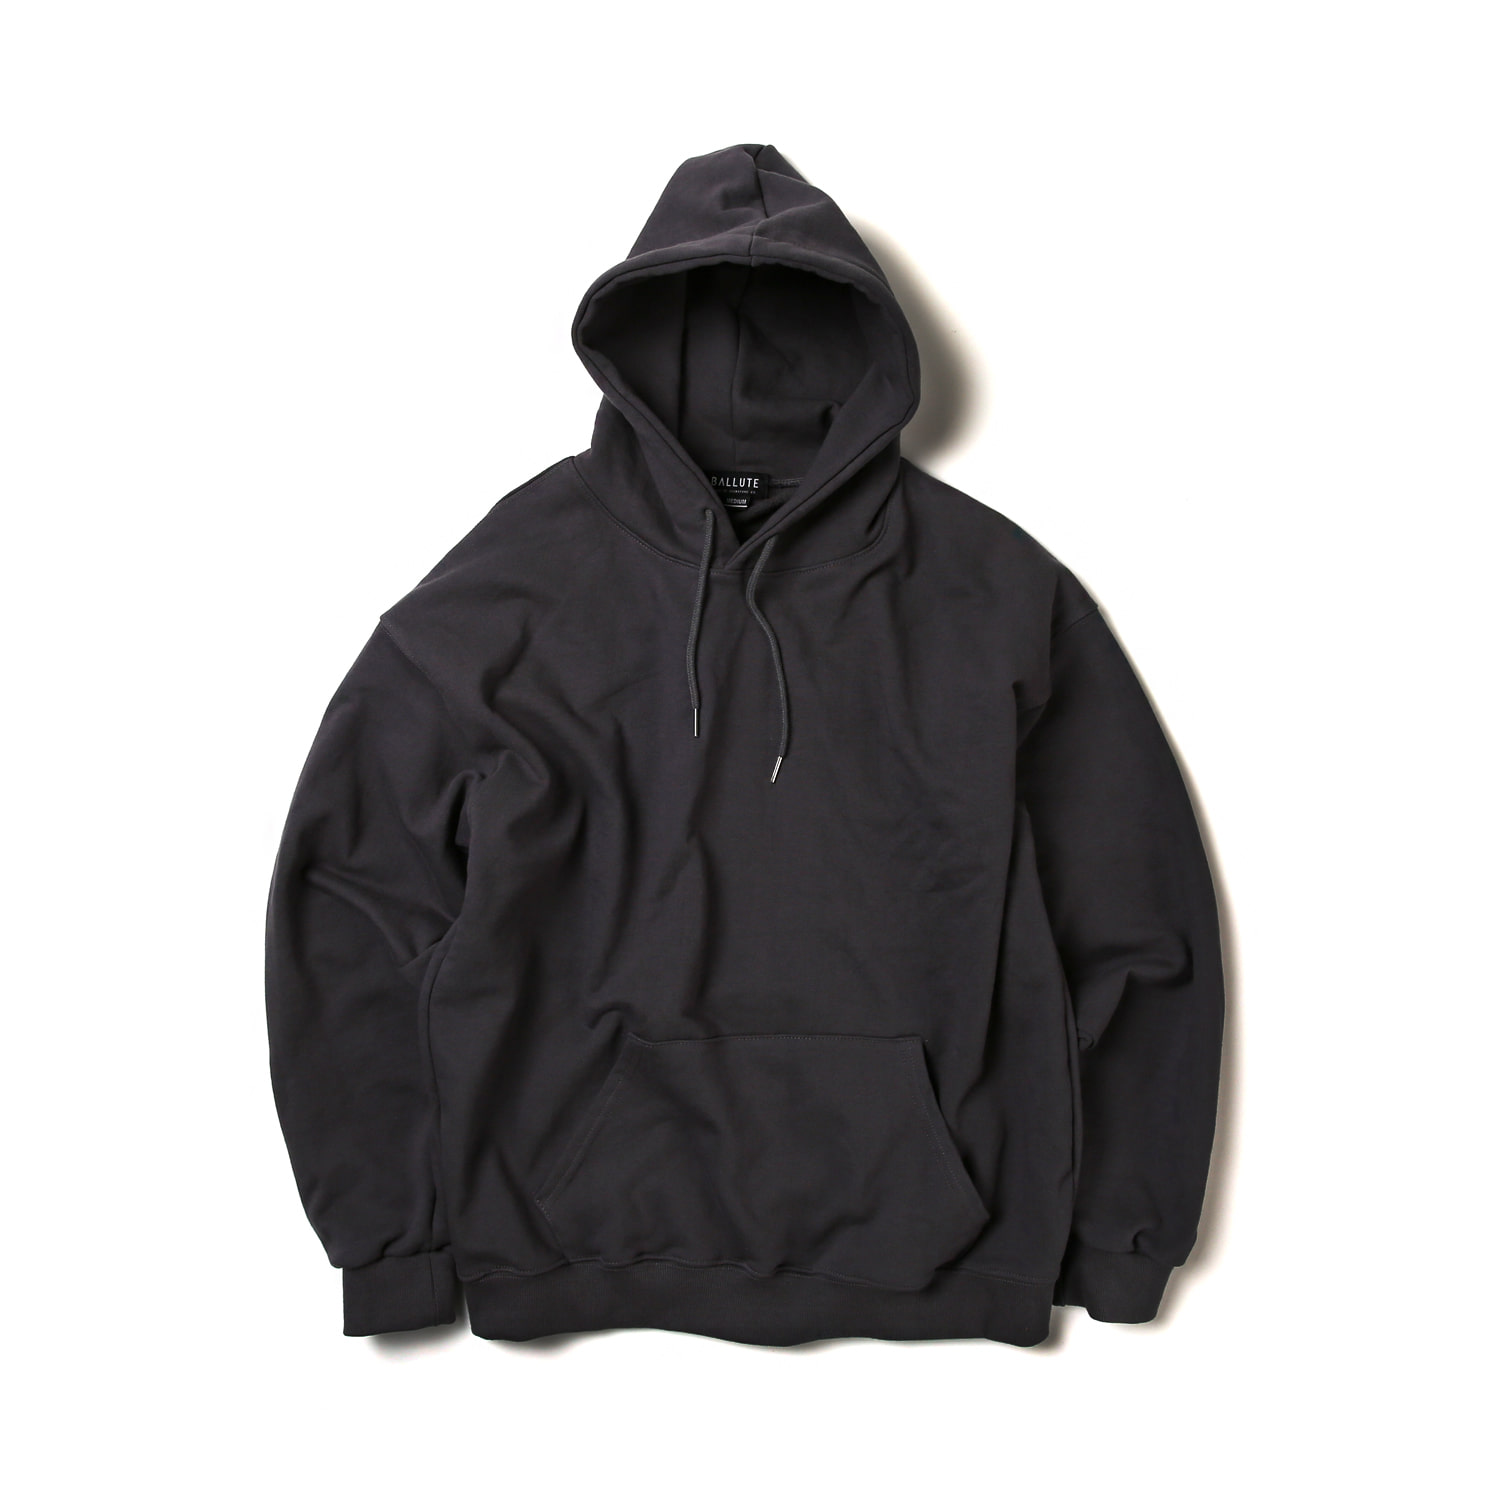 4 SEASONS HOODY (CHARCOAL)